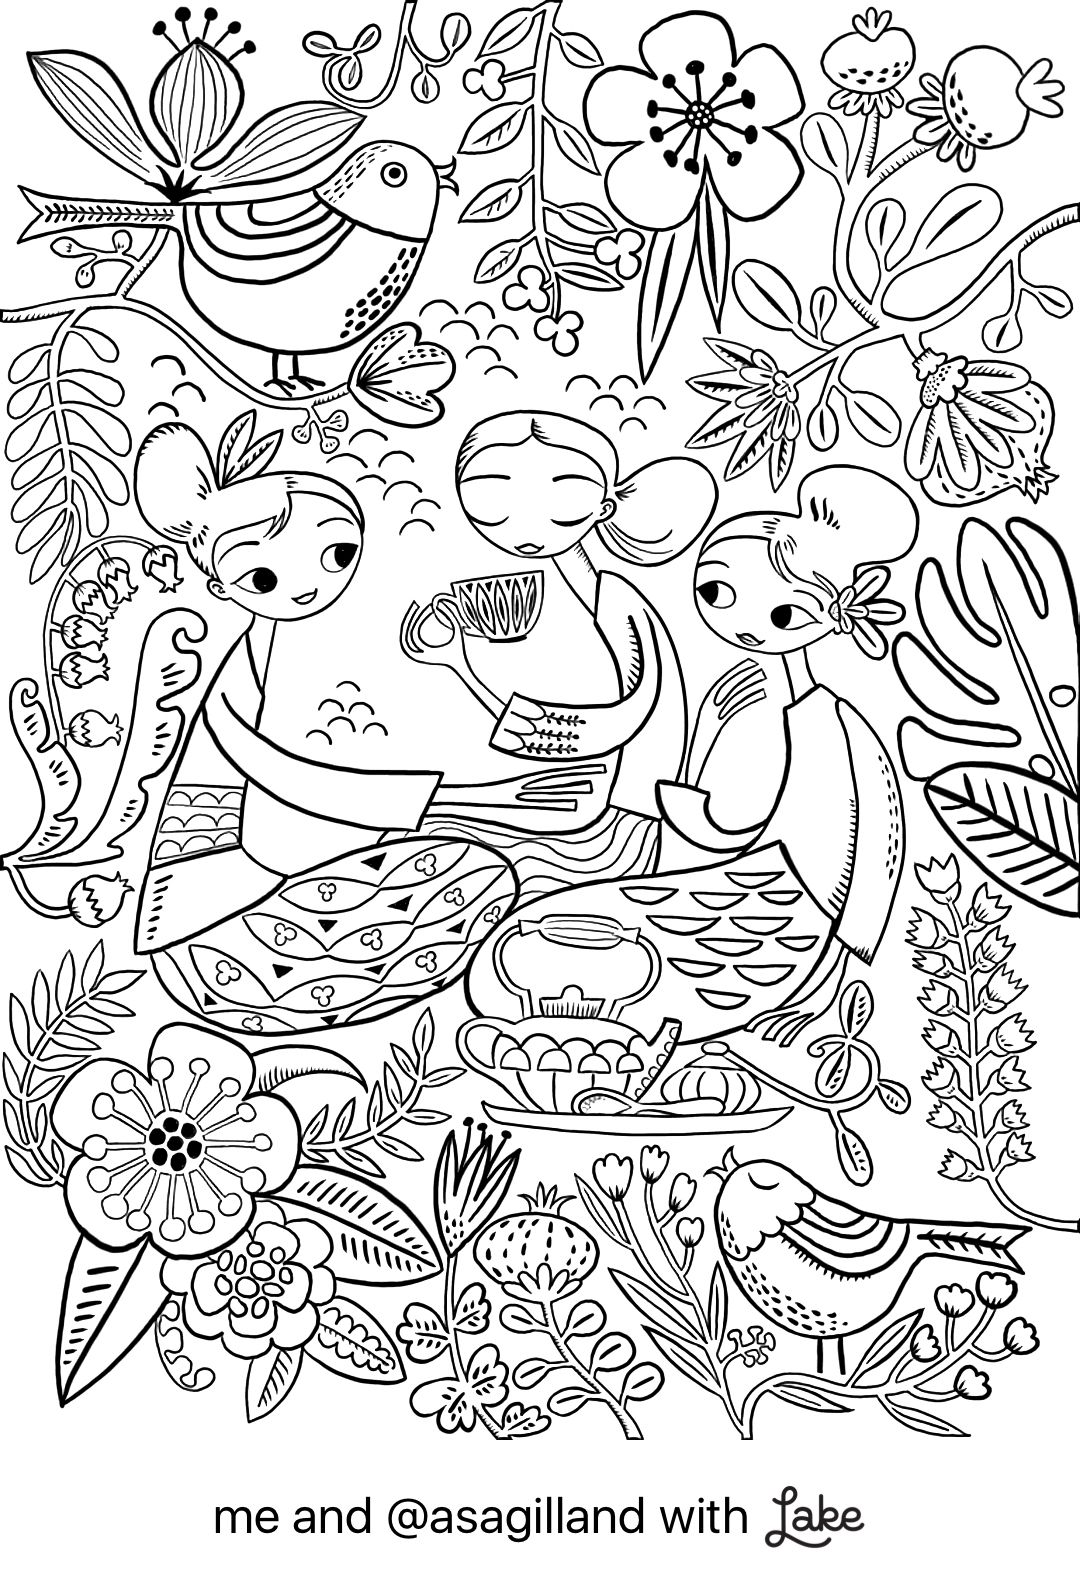 1080x1595 Coloring Page From Lake Coloring App Coloring Pages